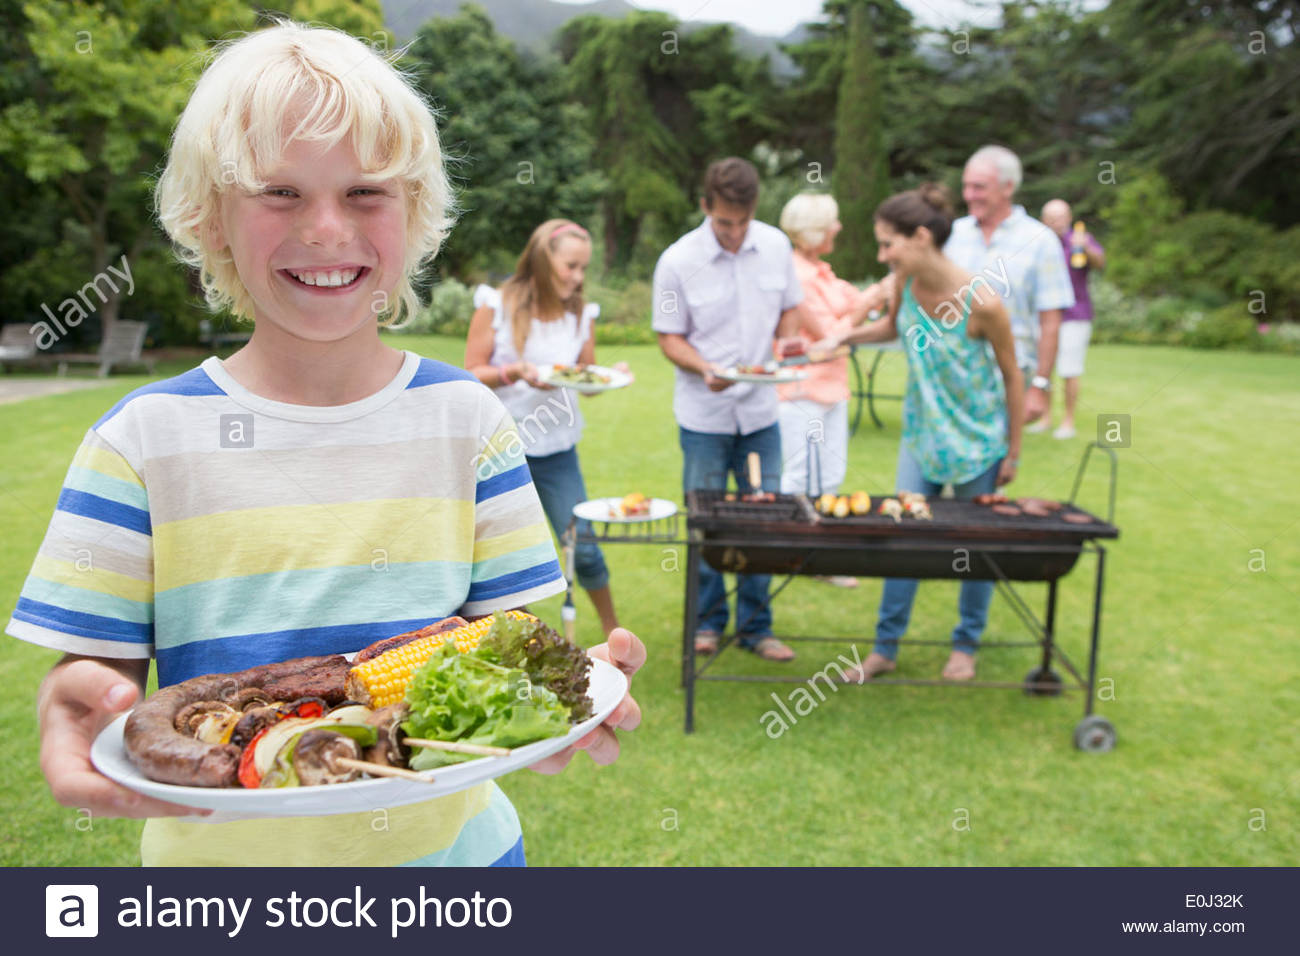 Portrait of smiling boy holding plate of barbecue with family in background - Stock Image